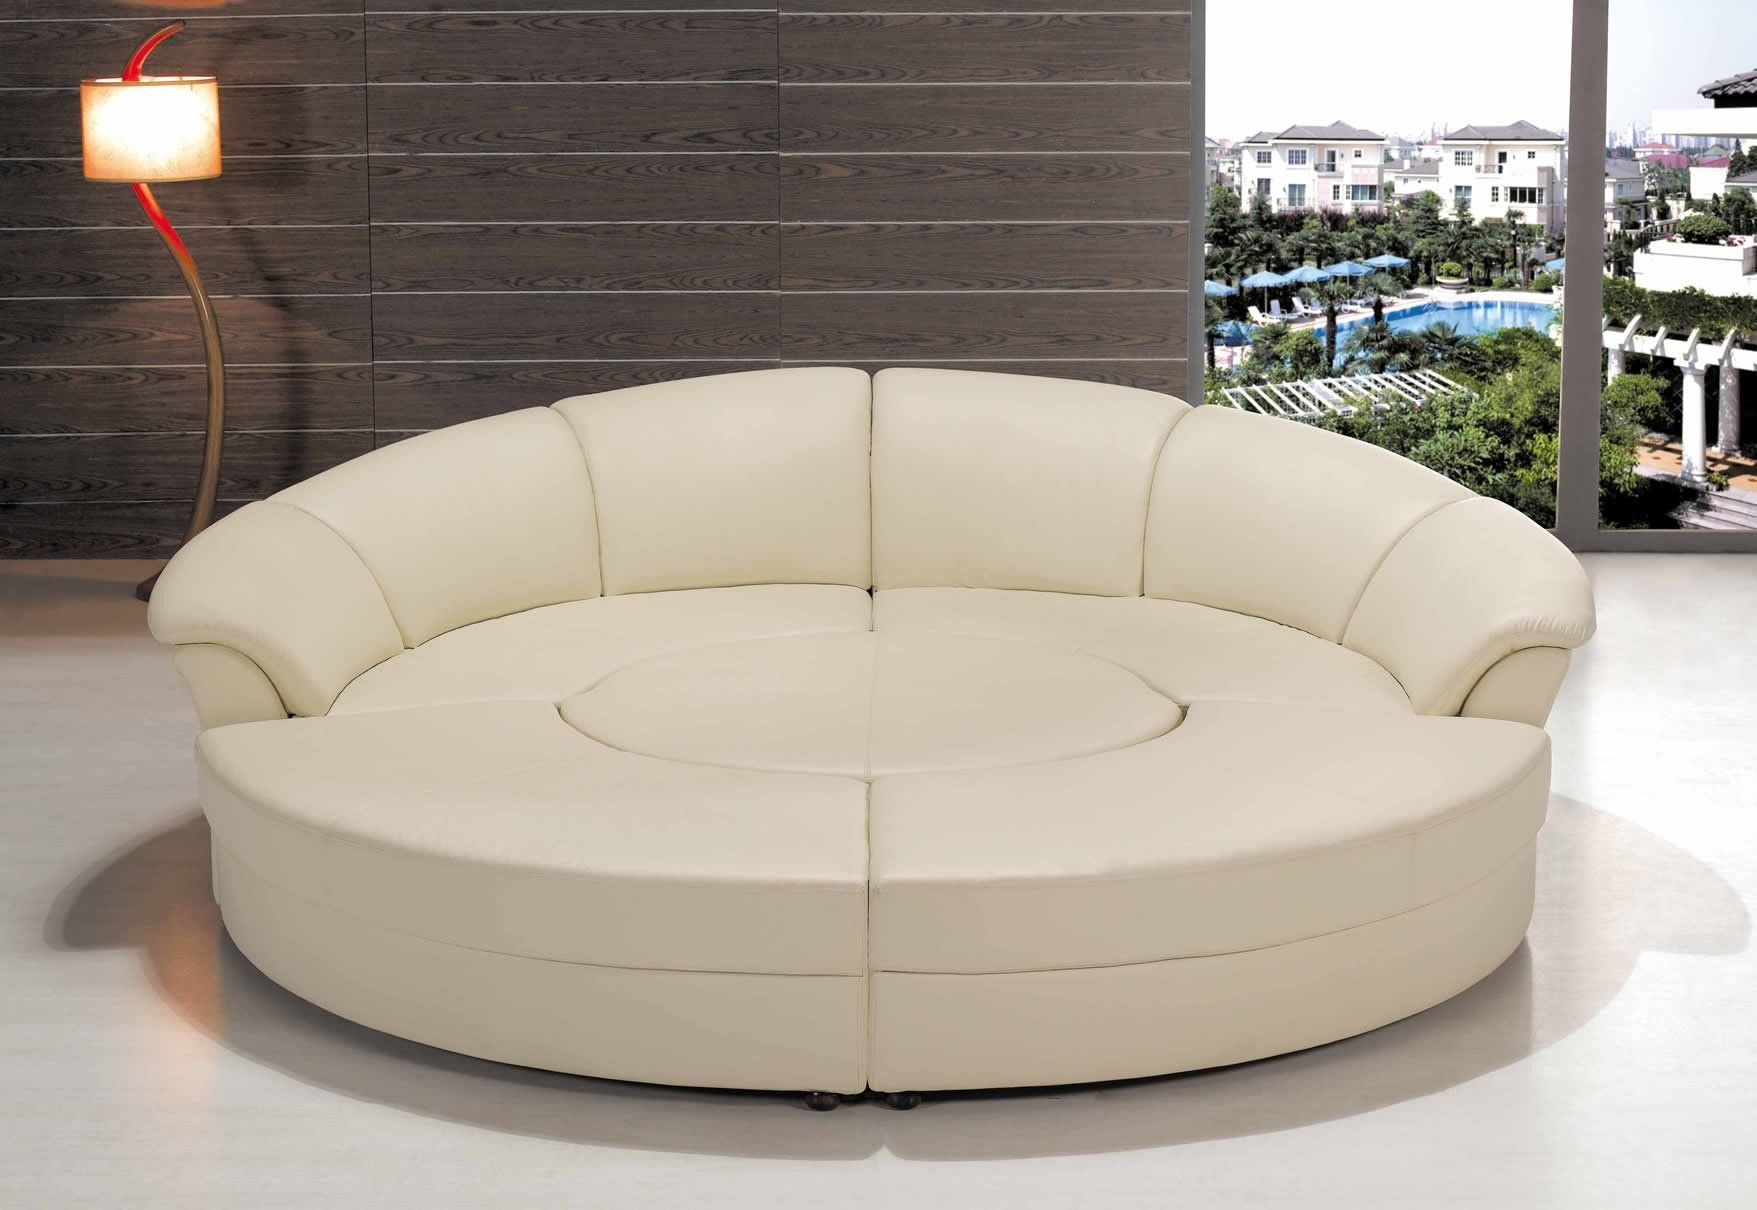 white leather round bed with curvy white headboard added